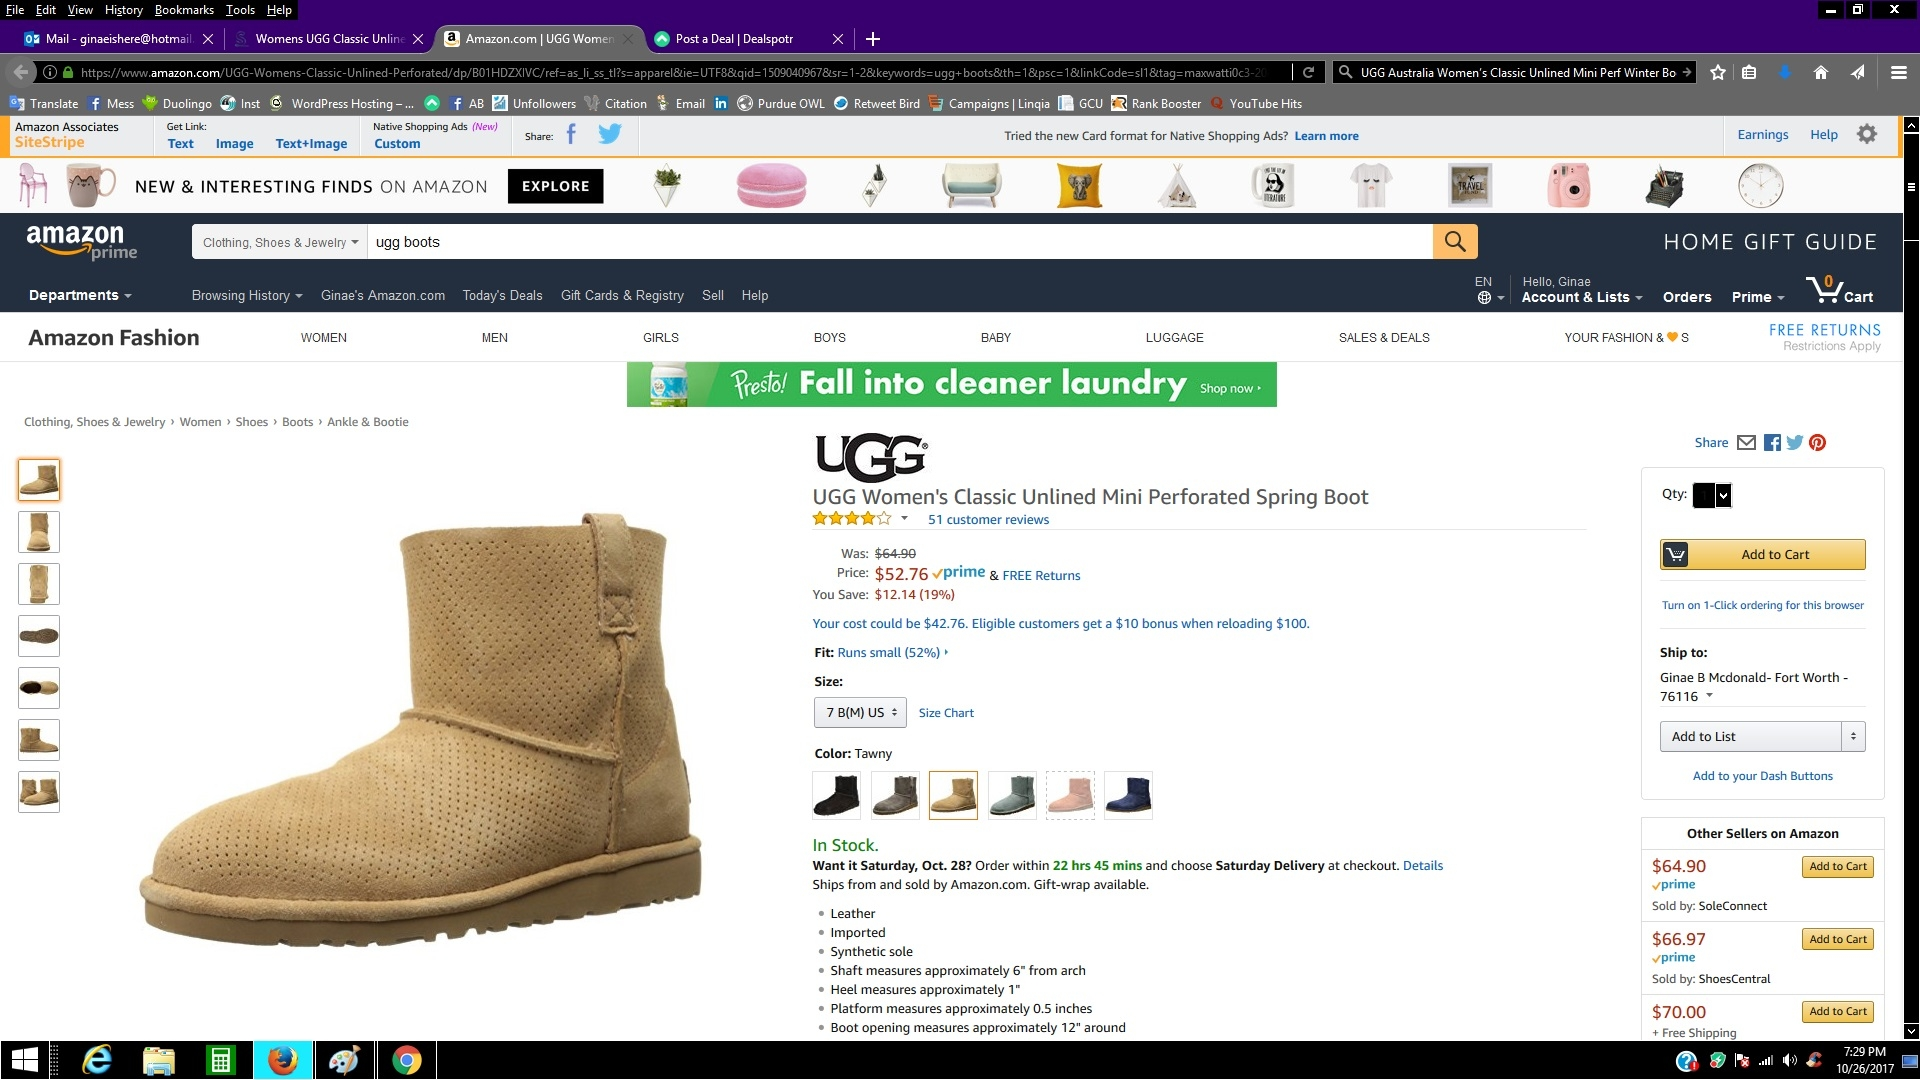 Ugg australia coupon codes